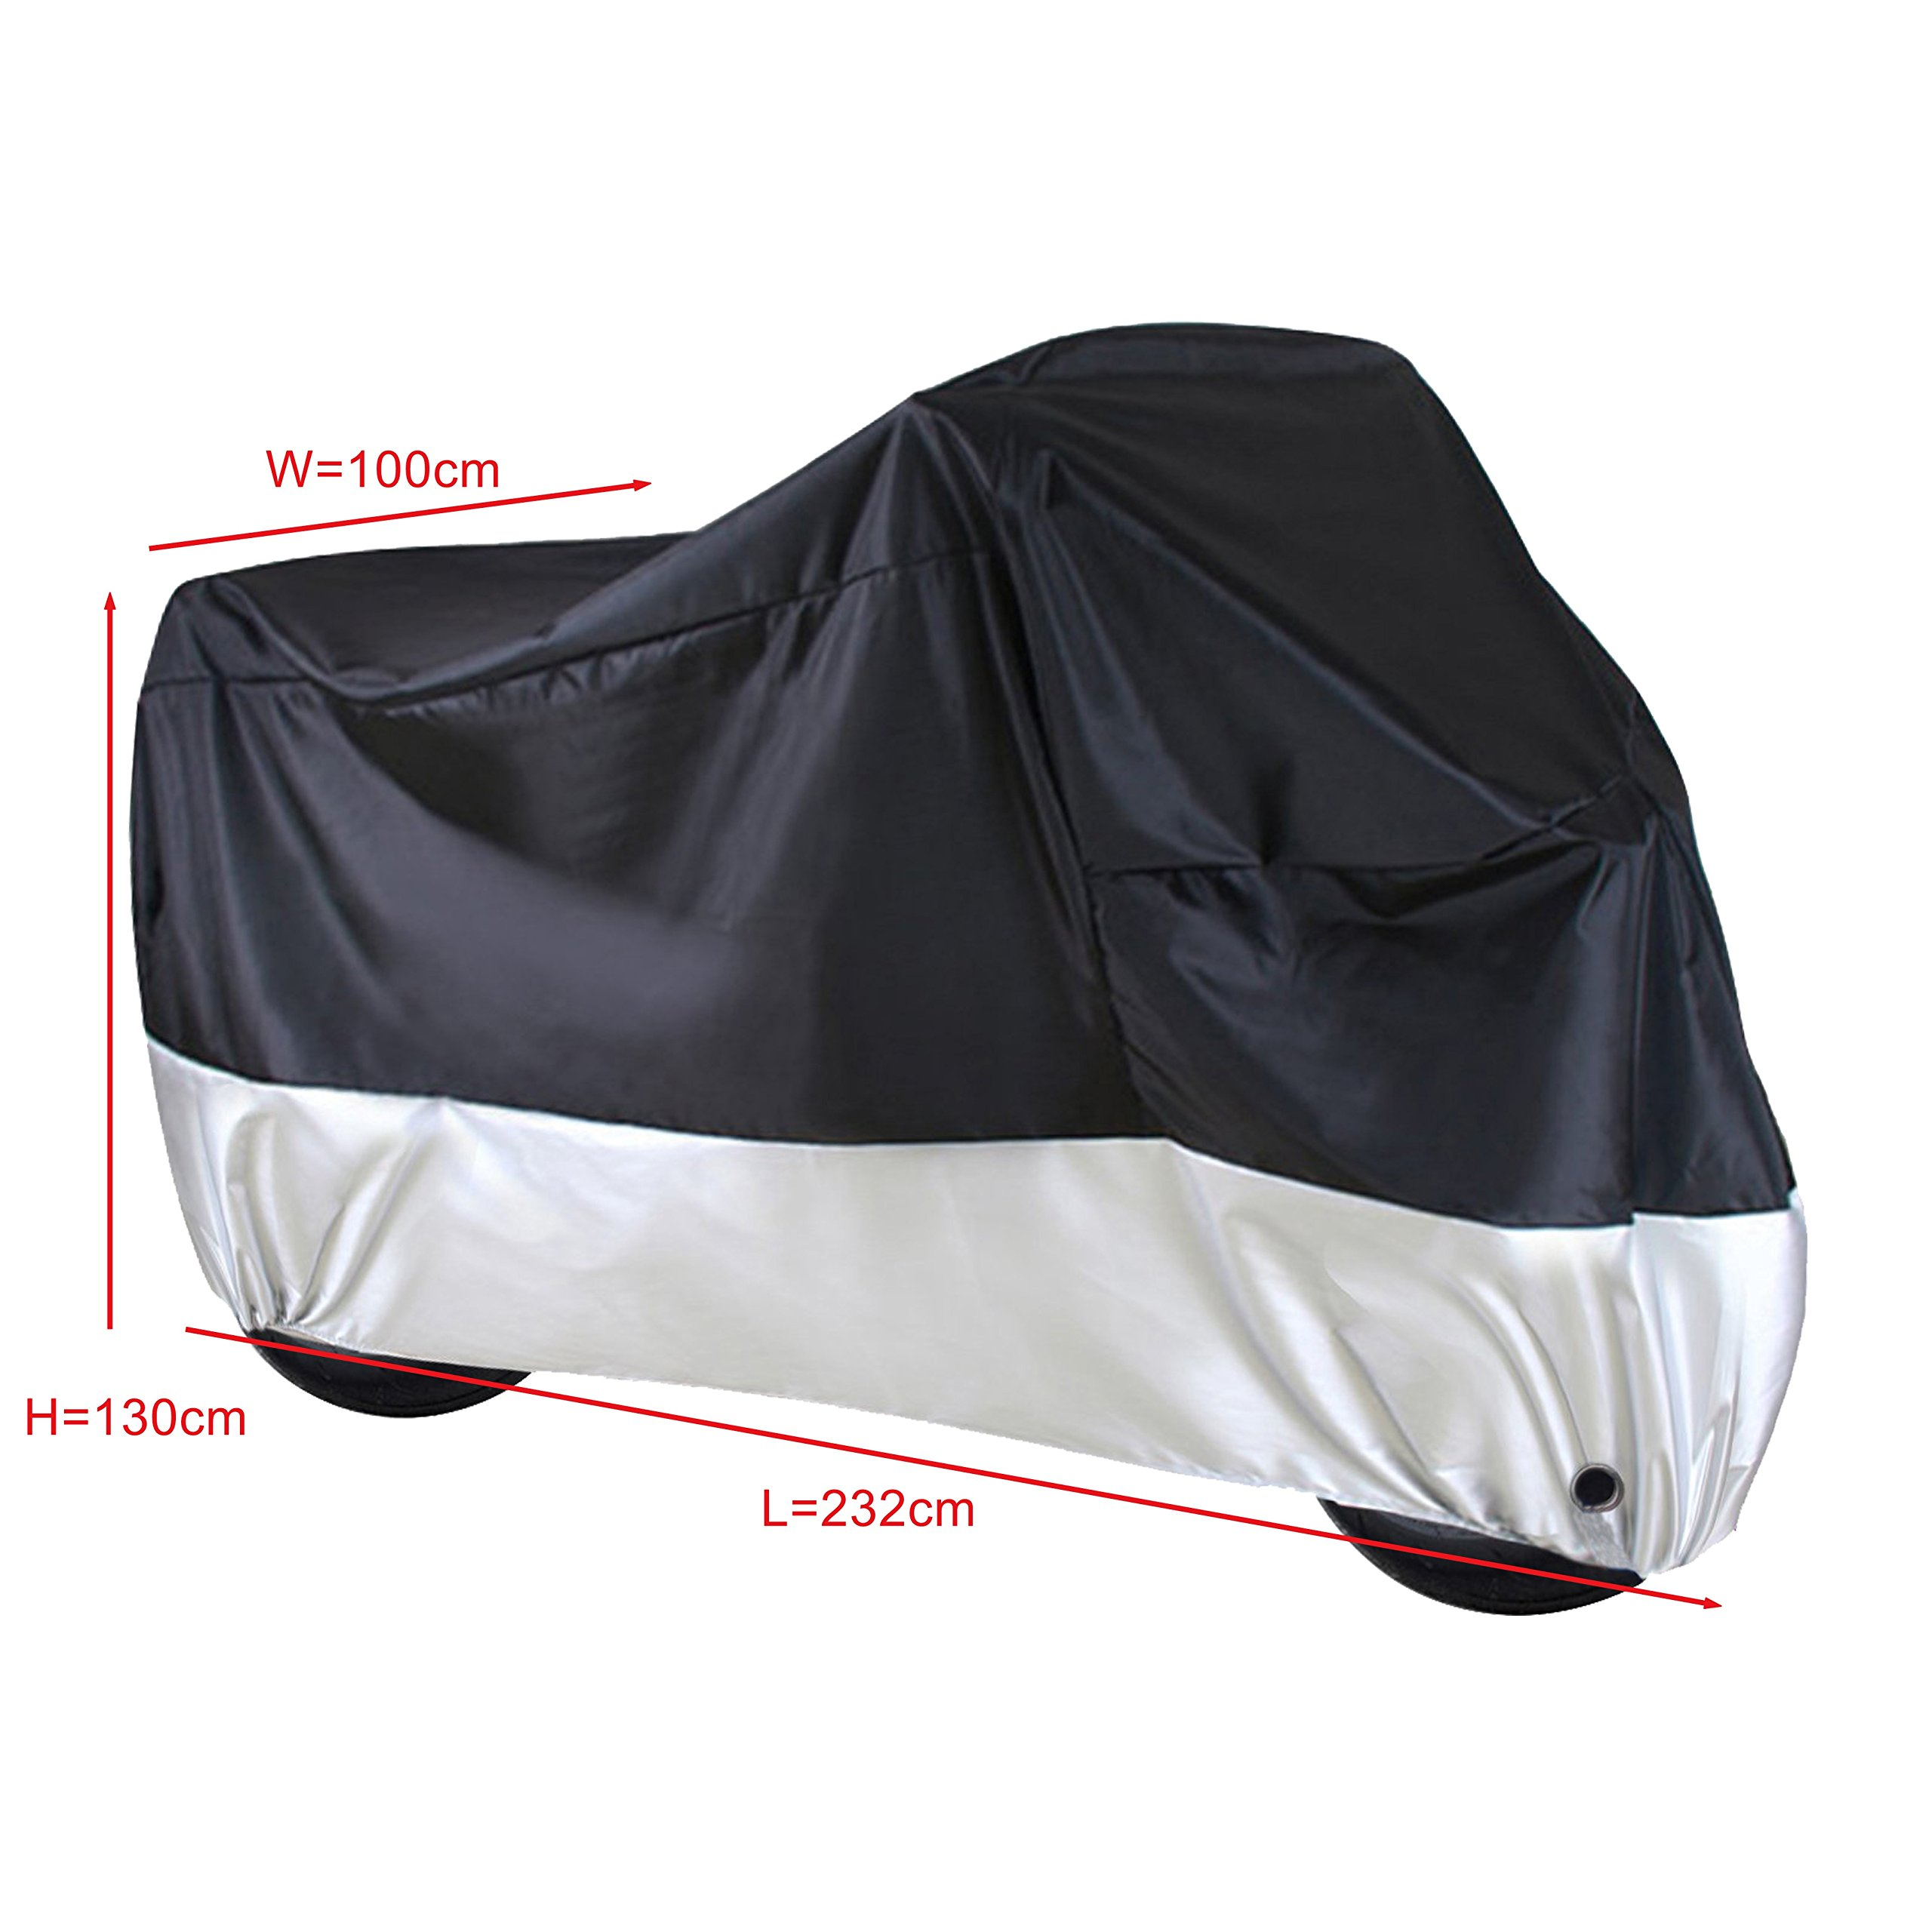 YaeTek Deluxe Motorcycle Cover, Weather Protection, UV, Air Vents, Heat Shield, Windshield Liner, Compression Bag, Grommets, Large fits Sport Bikes(L:91''39''51'')